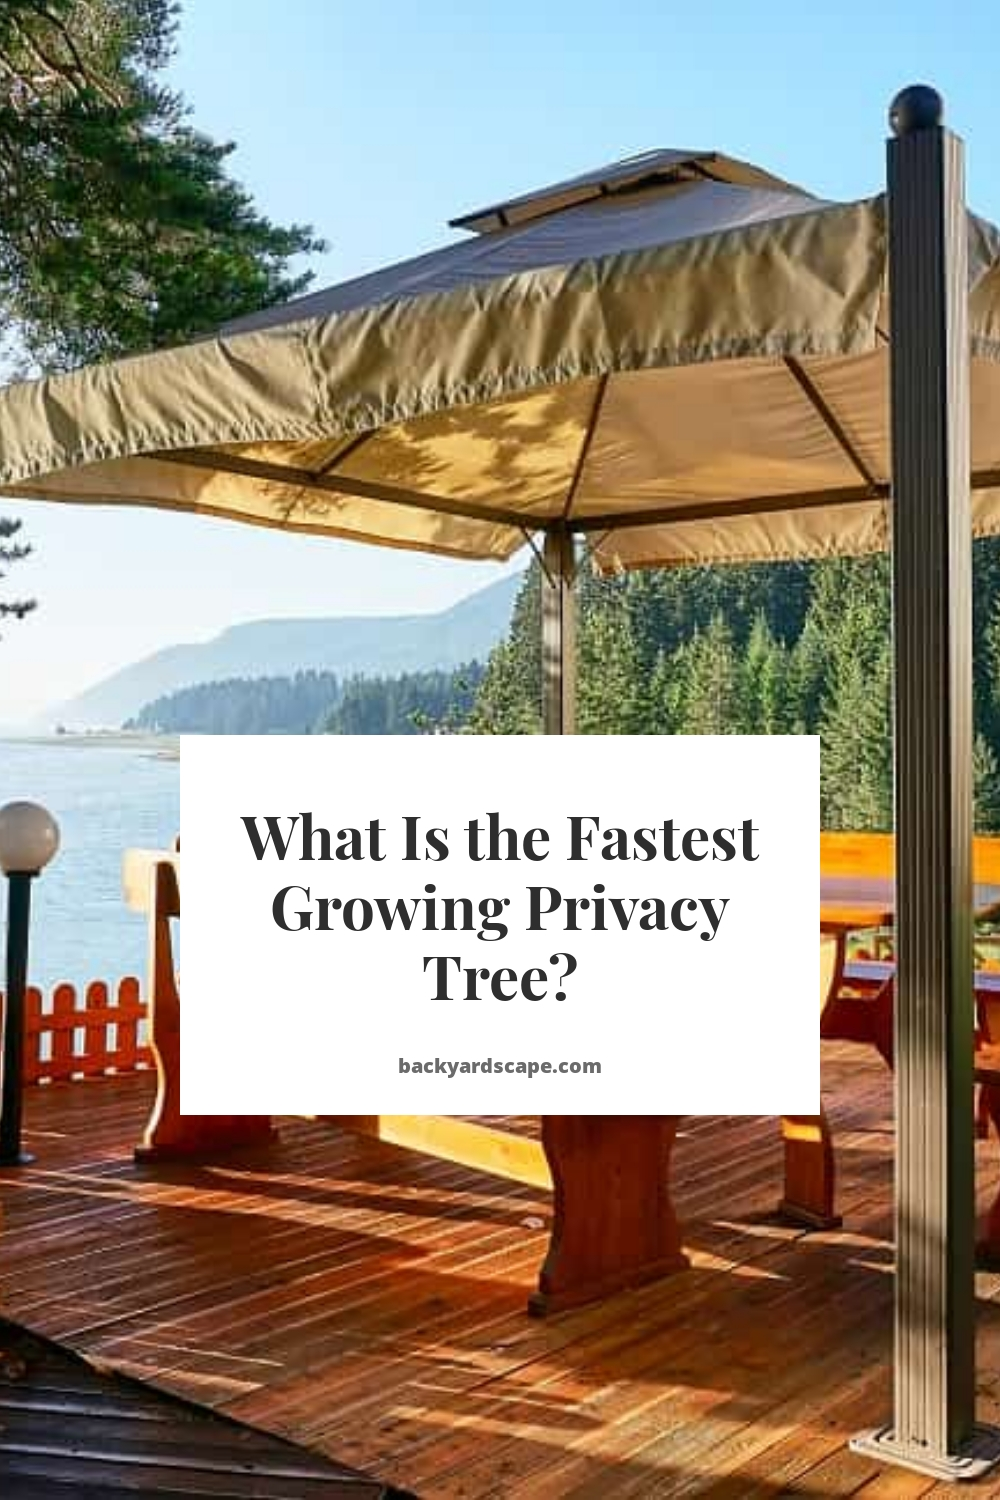 What Is the Fastest Growing Privacy Tree?